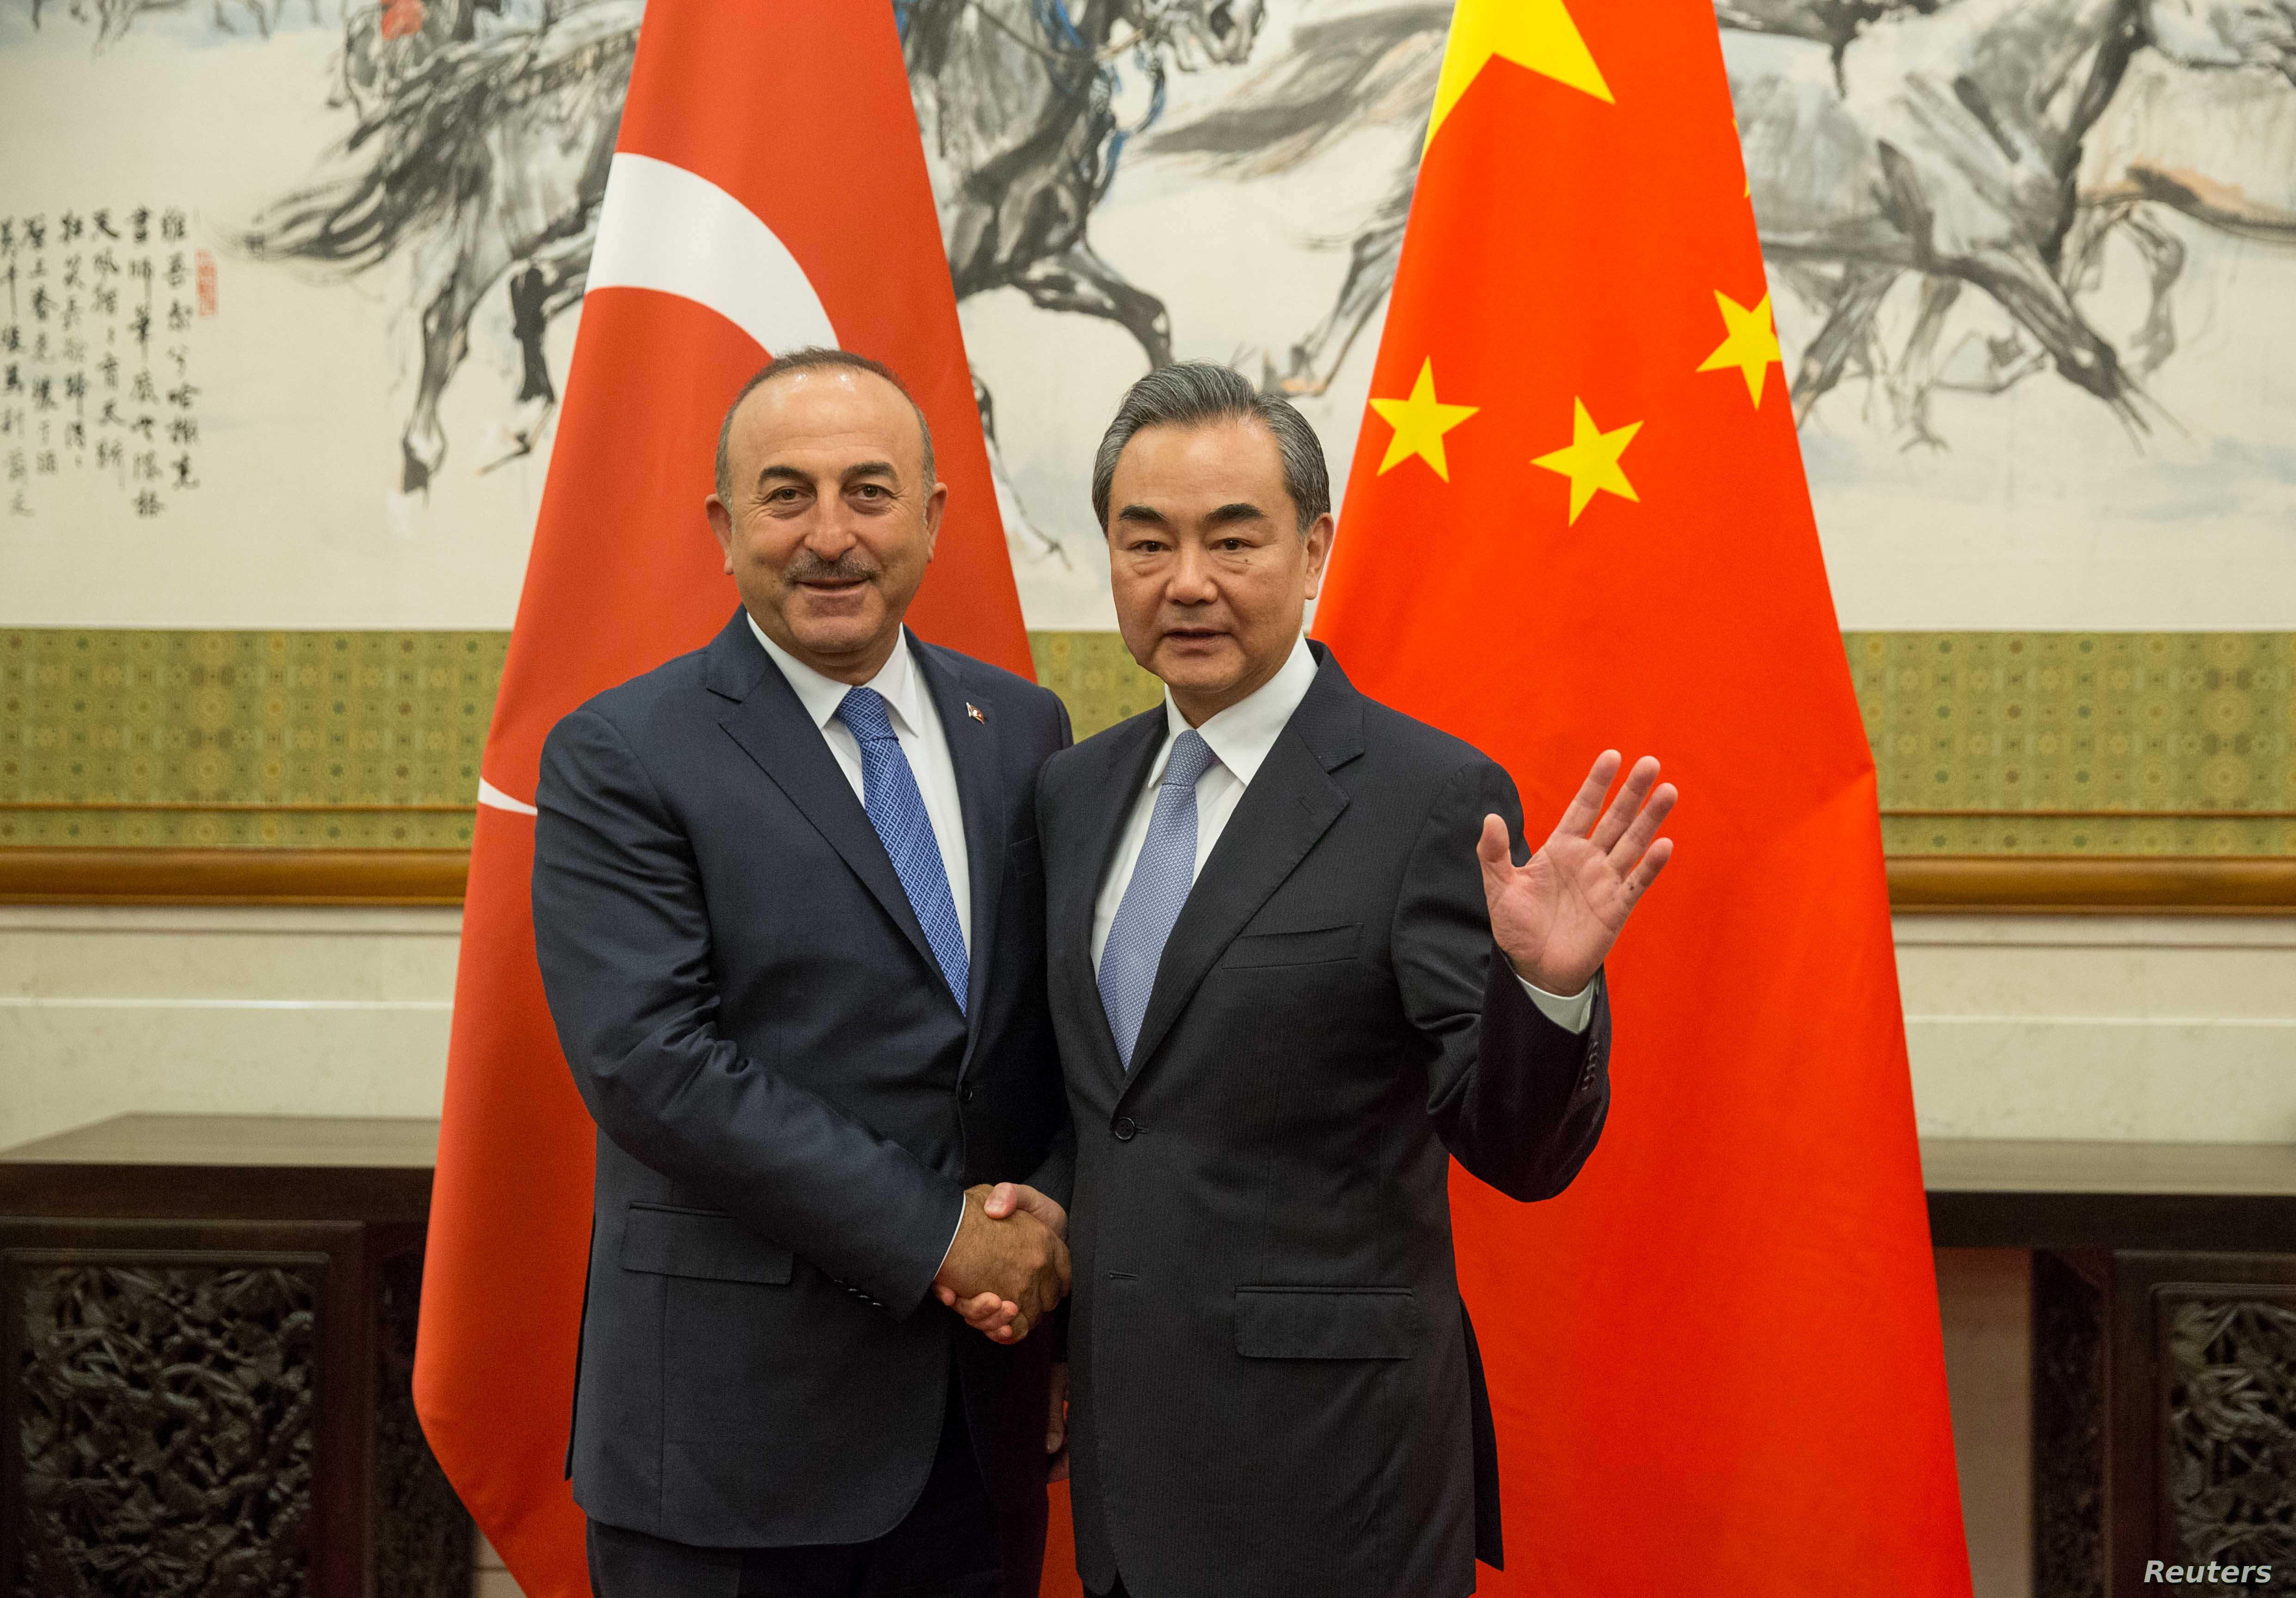 Turkey, China Pledge Security Cooperation | Voice of America - English